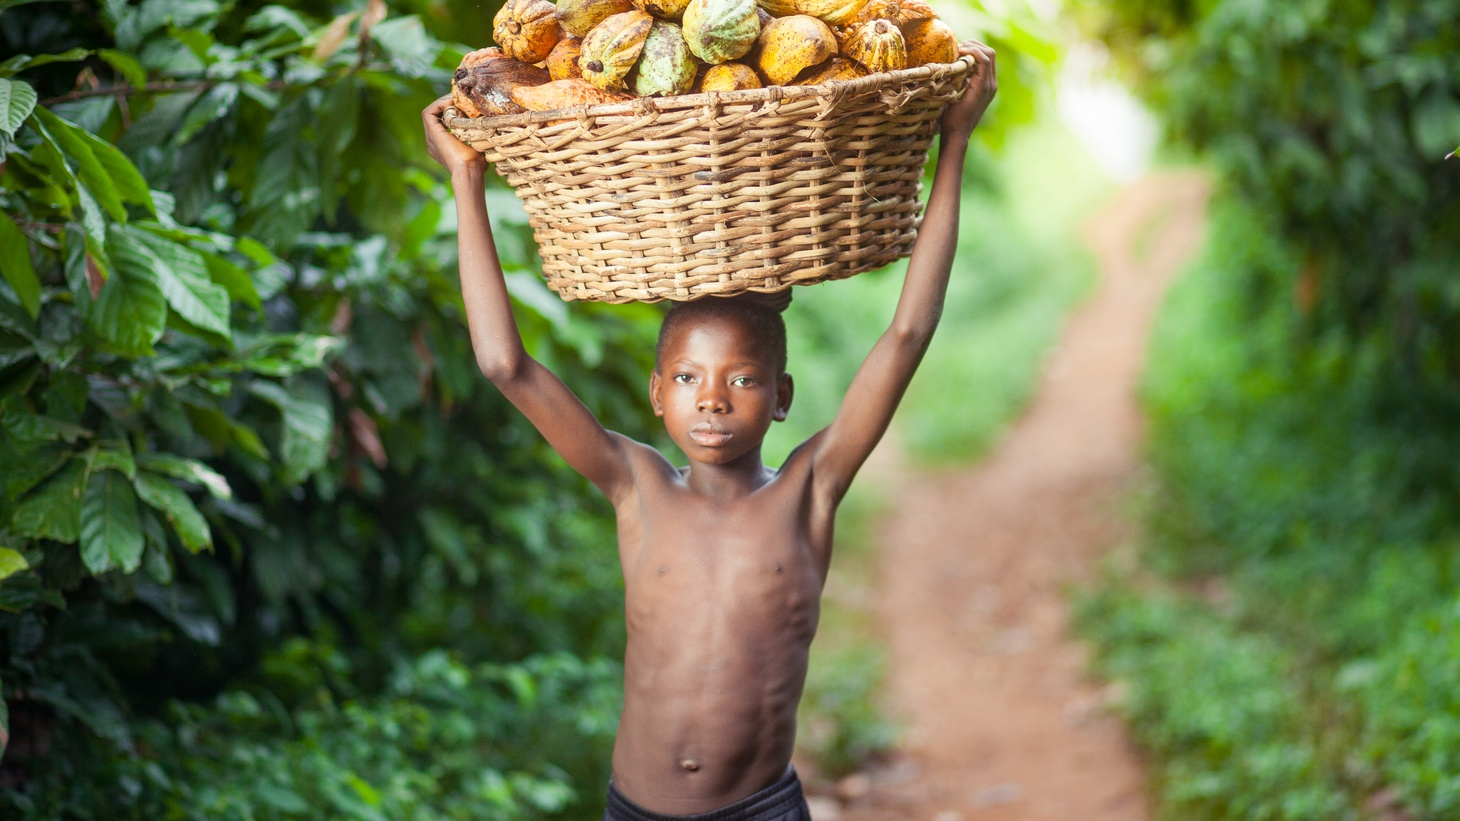 A young boy in Ghana harvests cocoa pods. The Supreme Court is poised to rule on two cases that would hold Nestlé and Cargill responsible for child labor abuses in the cocoa supply chain.